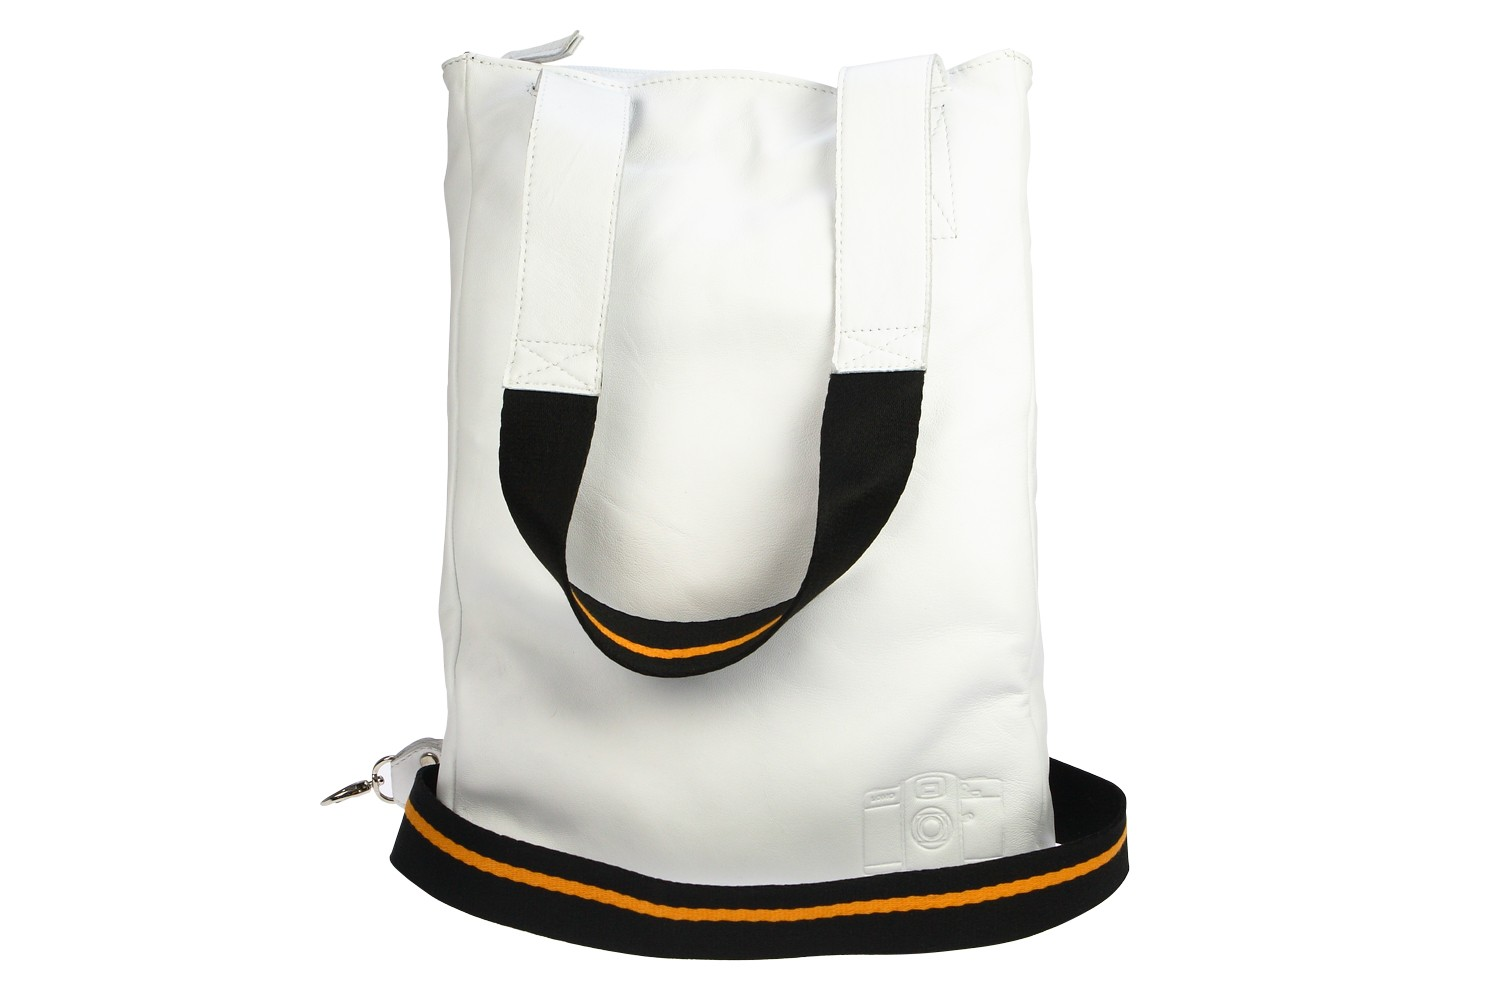 Lomofolio Bag White with Orange Strap